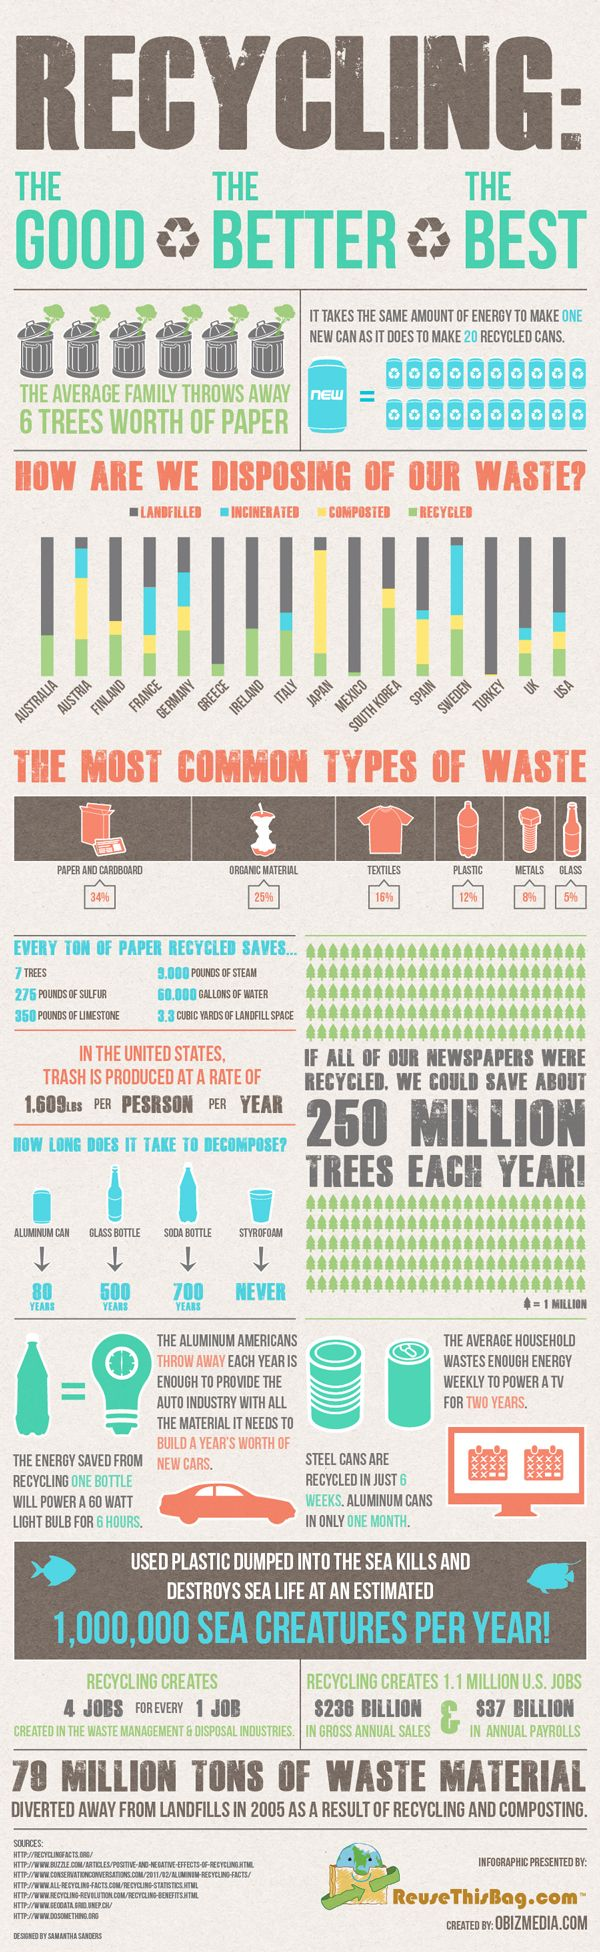 Recycling: The Good, The Better and The Best